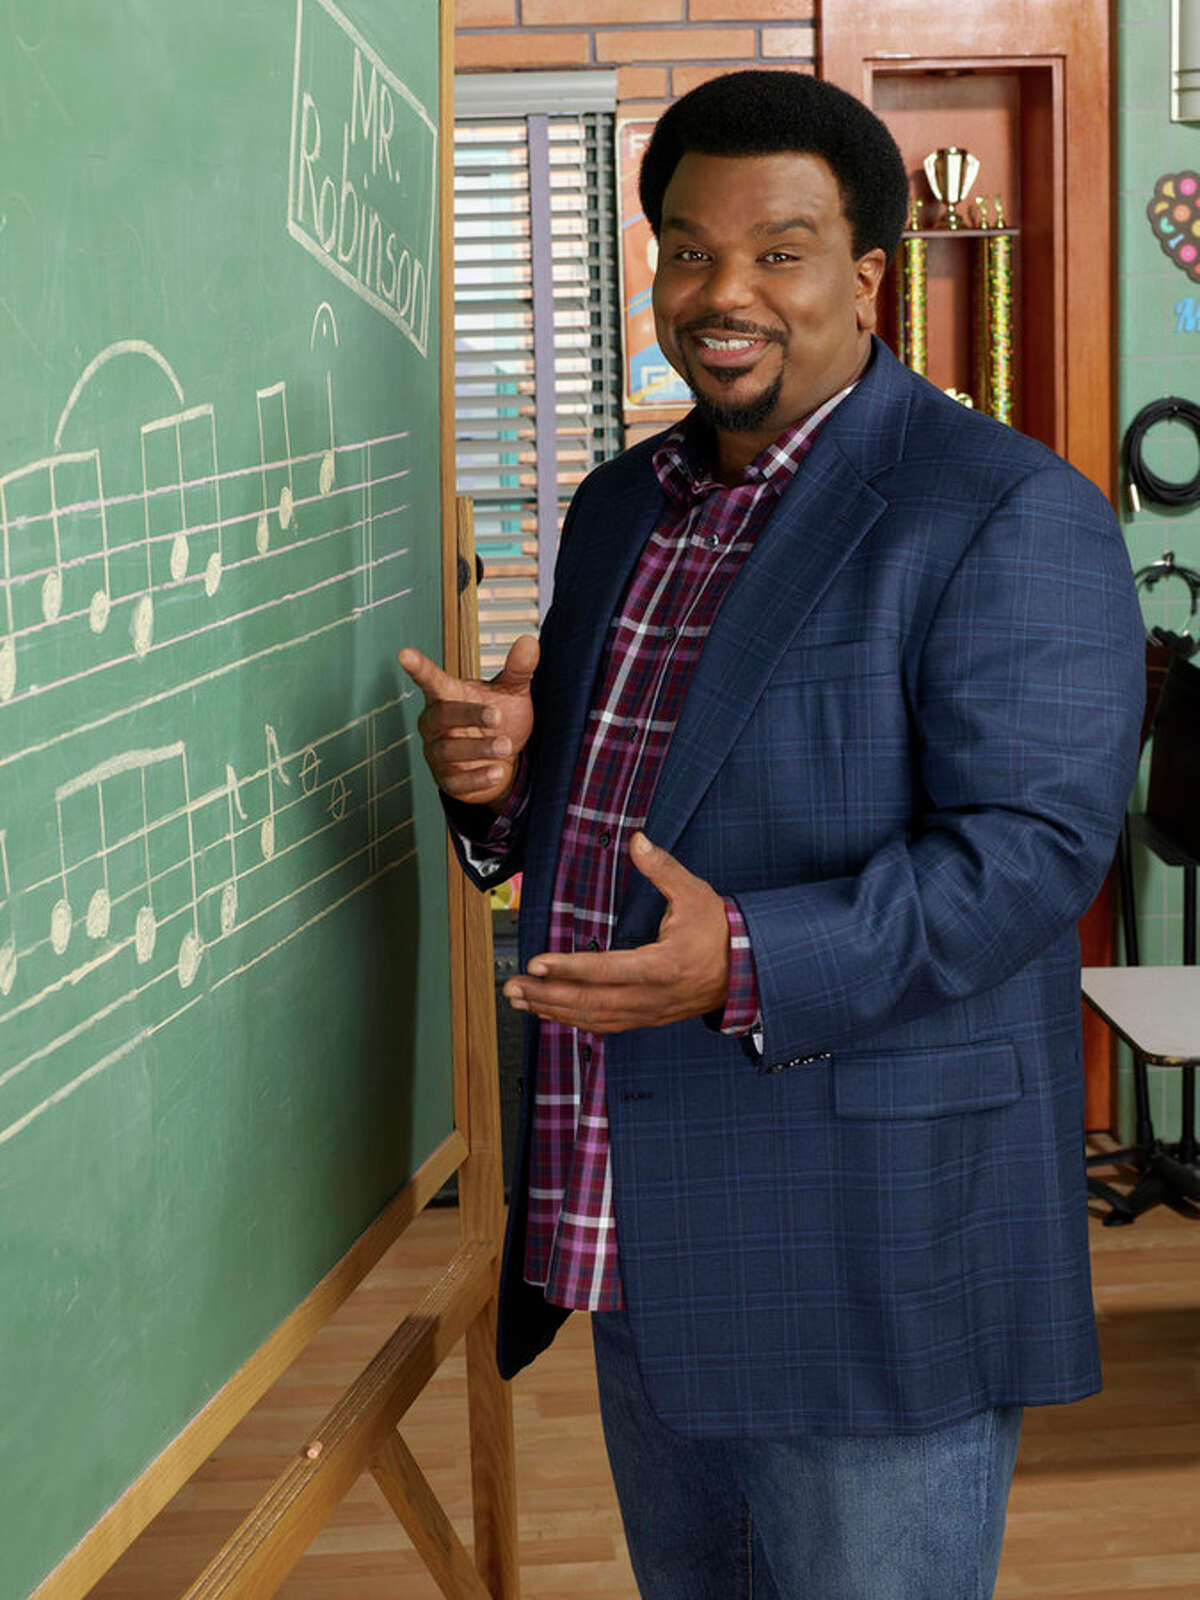 'The Office's' Craig Robinson gets his own show, appropriately called